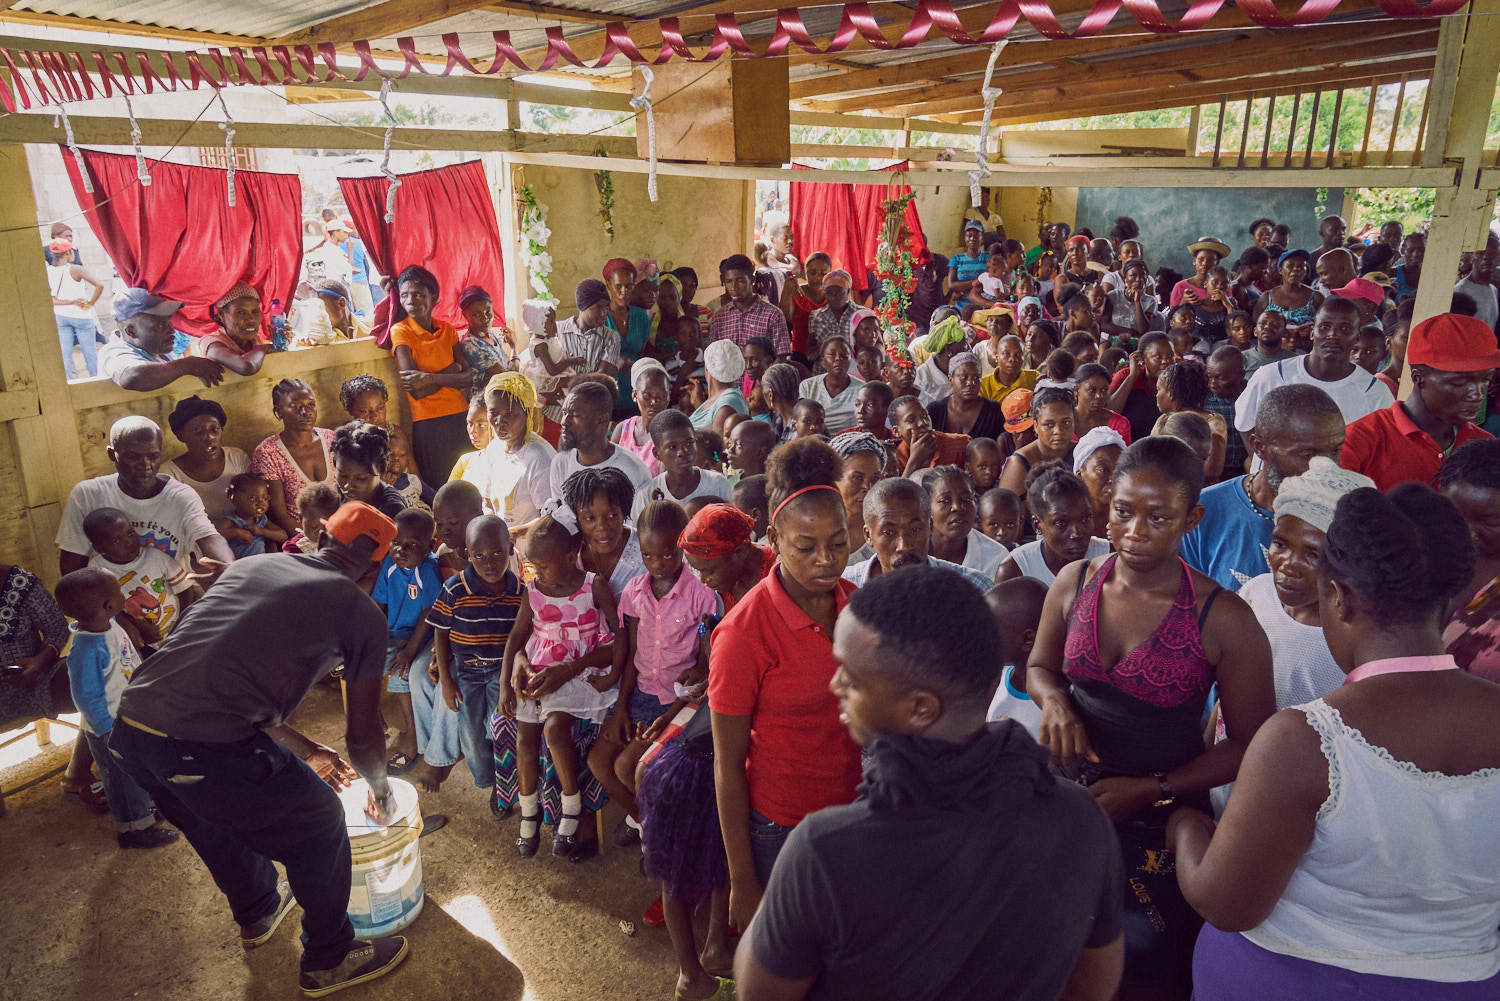 Early in the morning, the church building was filled to capacity and remained so for the duration of the day.